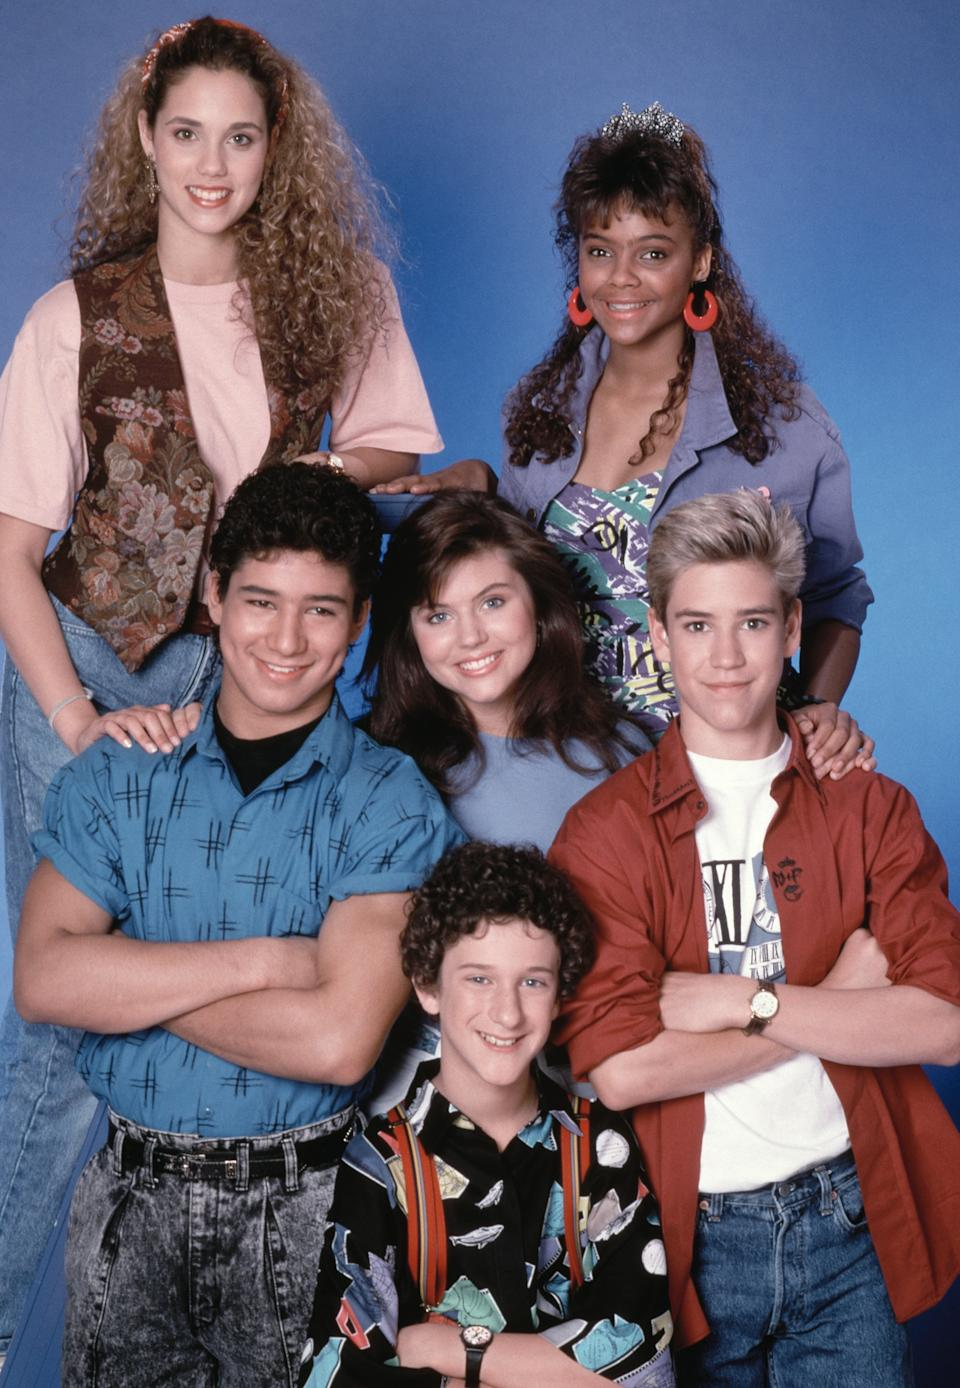 SAVED BY THE BELL -- Season 1 -- Pictured: (top, l-r)  Eliszabeth Berkeley as Jessie Spano, Lark Voorhies as Lisa Turtle, (middle) Mario Lopez as A.C. Slater, Tiffani Thiessen as Kelly Kapowski, Mark-Paul Gosselaar as Zack Morris, (bottom) Dustin DIamond as Screech Powers -- Photo by: NBCU Photo Bank